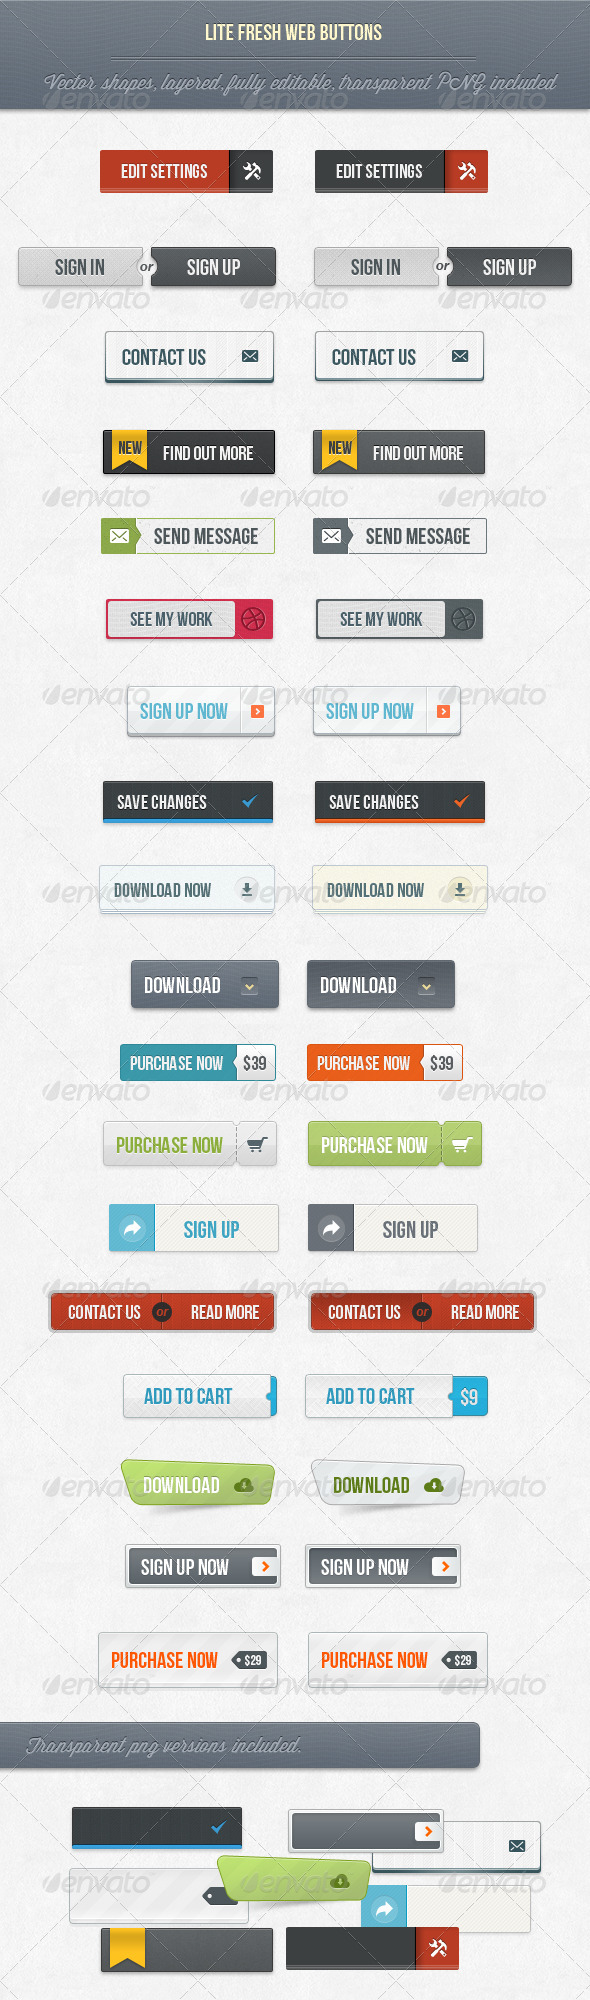 GraphicRiver 18 Lite Fresh Web Buttons 3869817